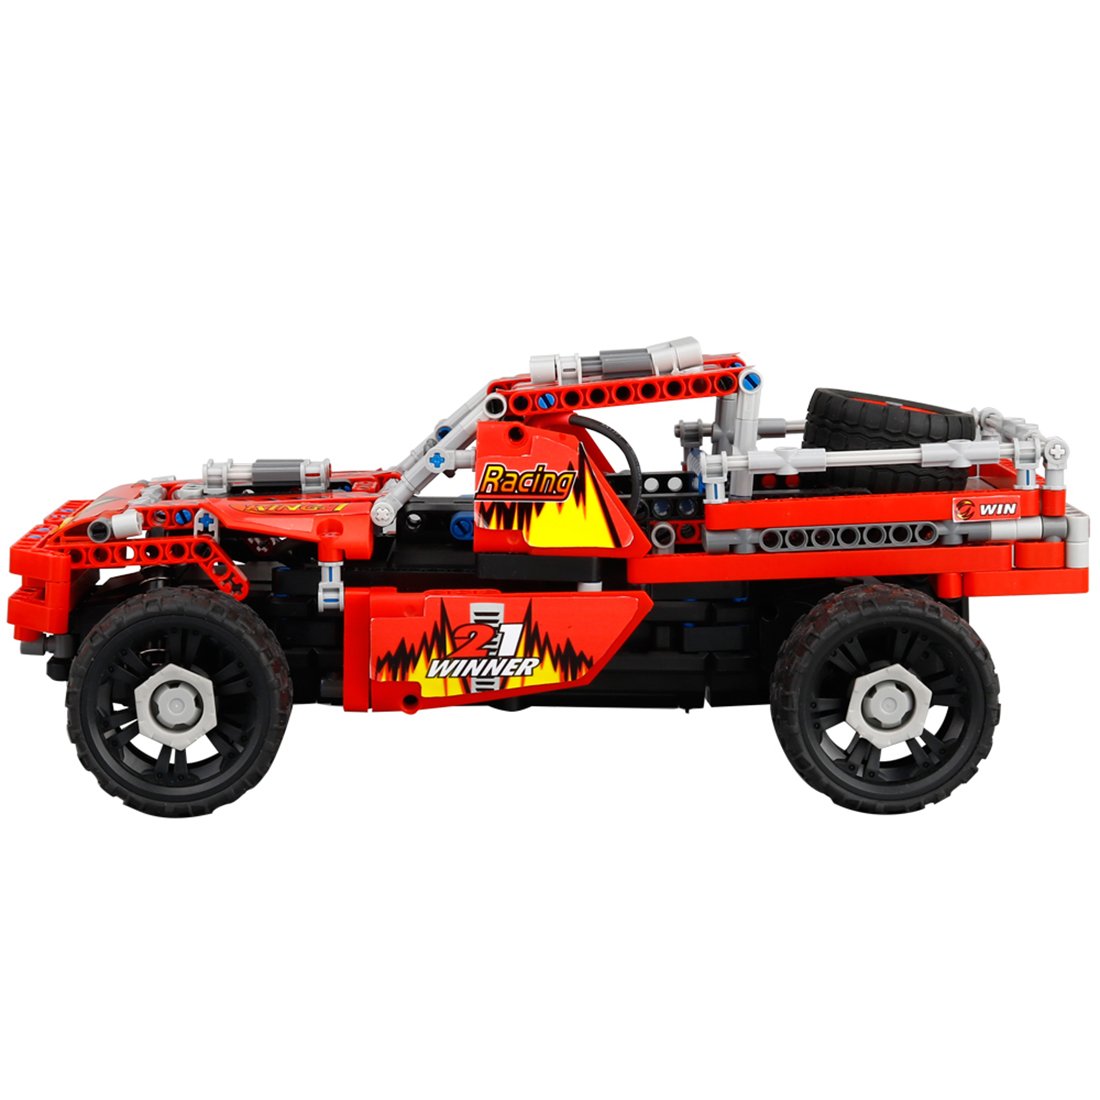 DIY Building Block kit High Speed RC Car Chassis Off-road Vehicle Deformation Warrior Type Vehicle Educational Kids Cars Toys некрасов андрей приключения капитана врунгеля